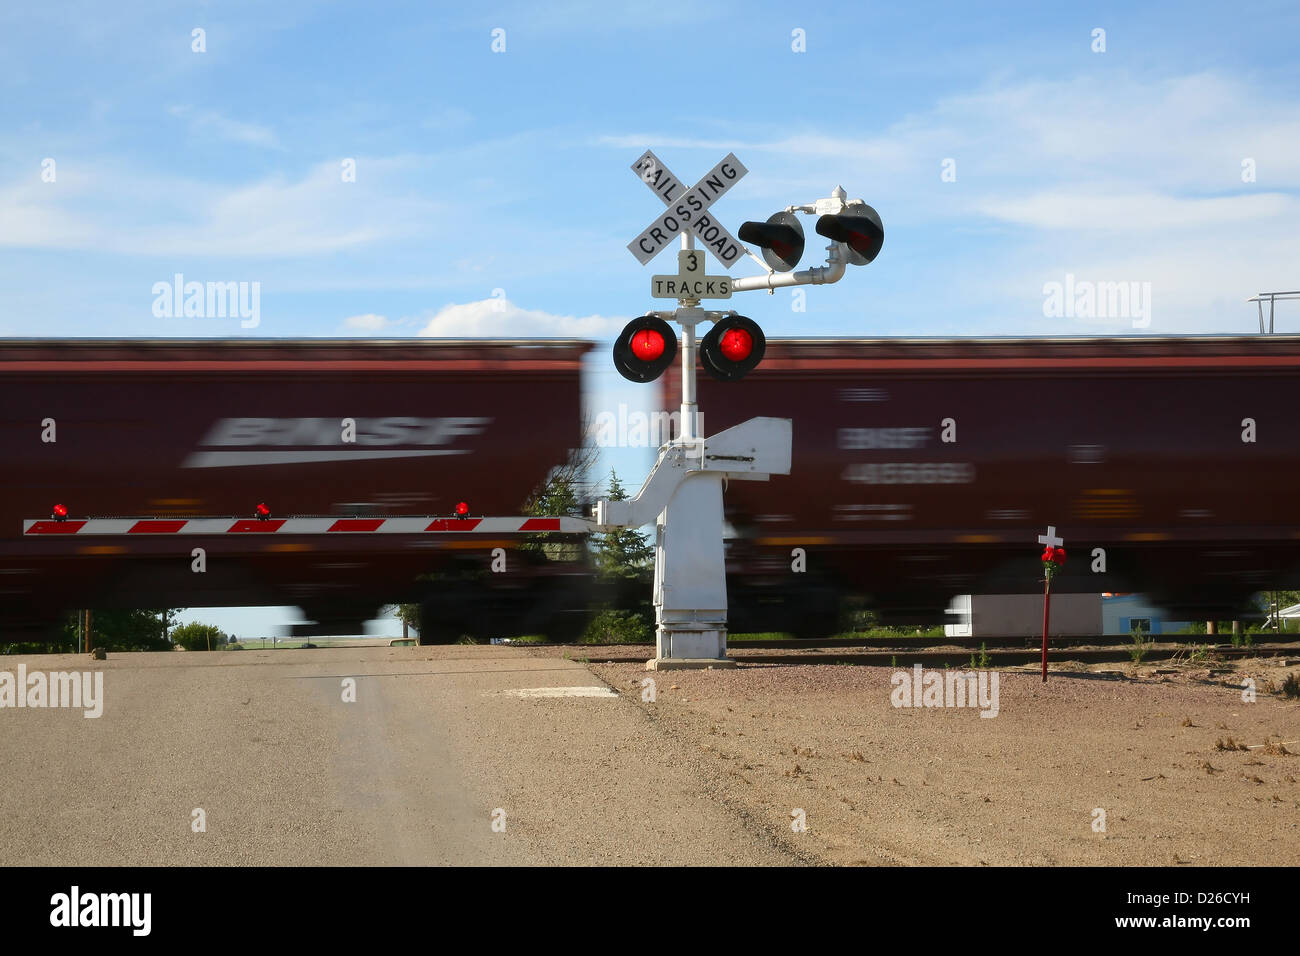 Railroad crossing fatality site - Stock Image